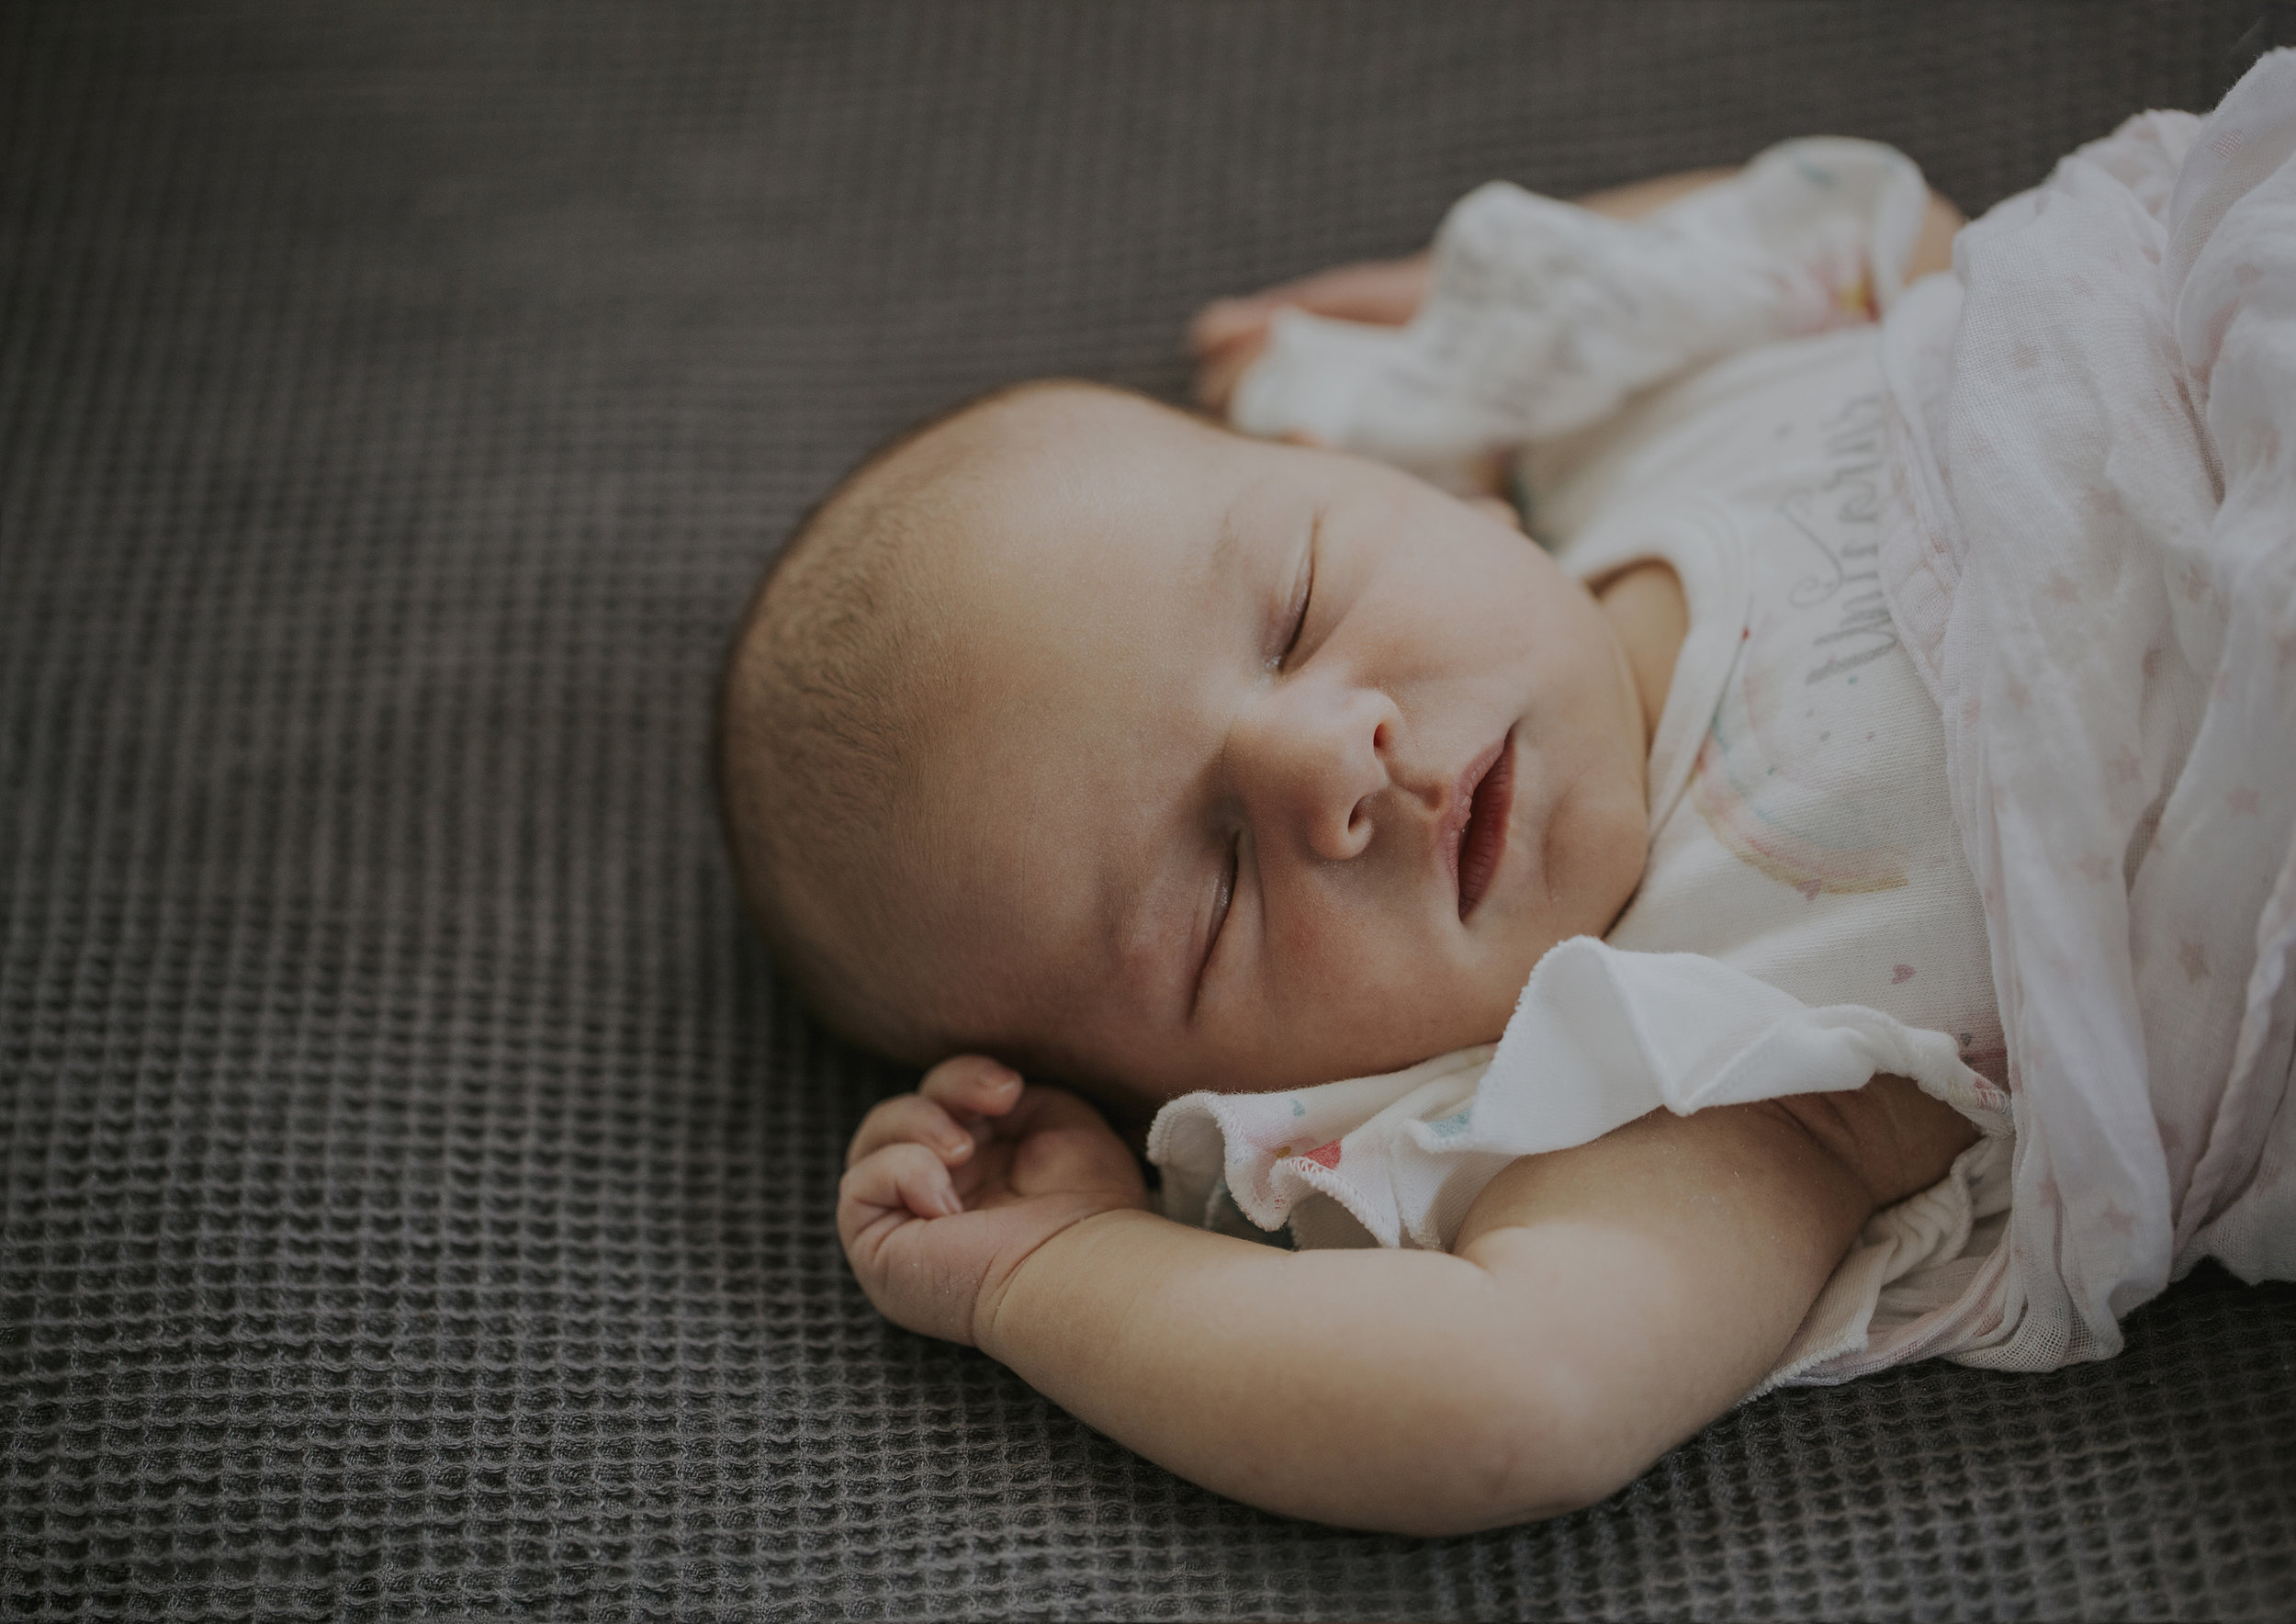 Baby and Newborn Lifestyle Photography Melbourne